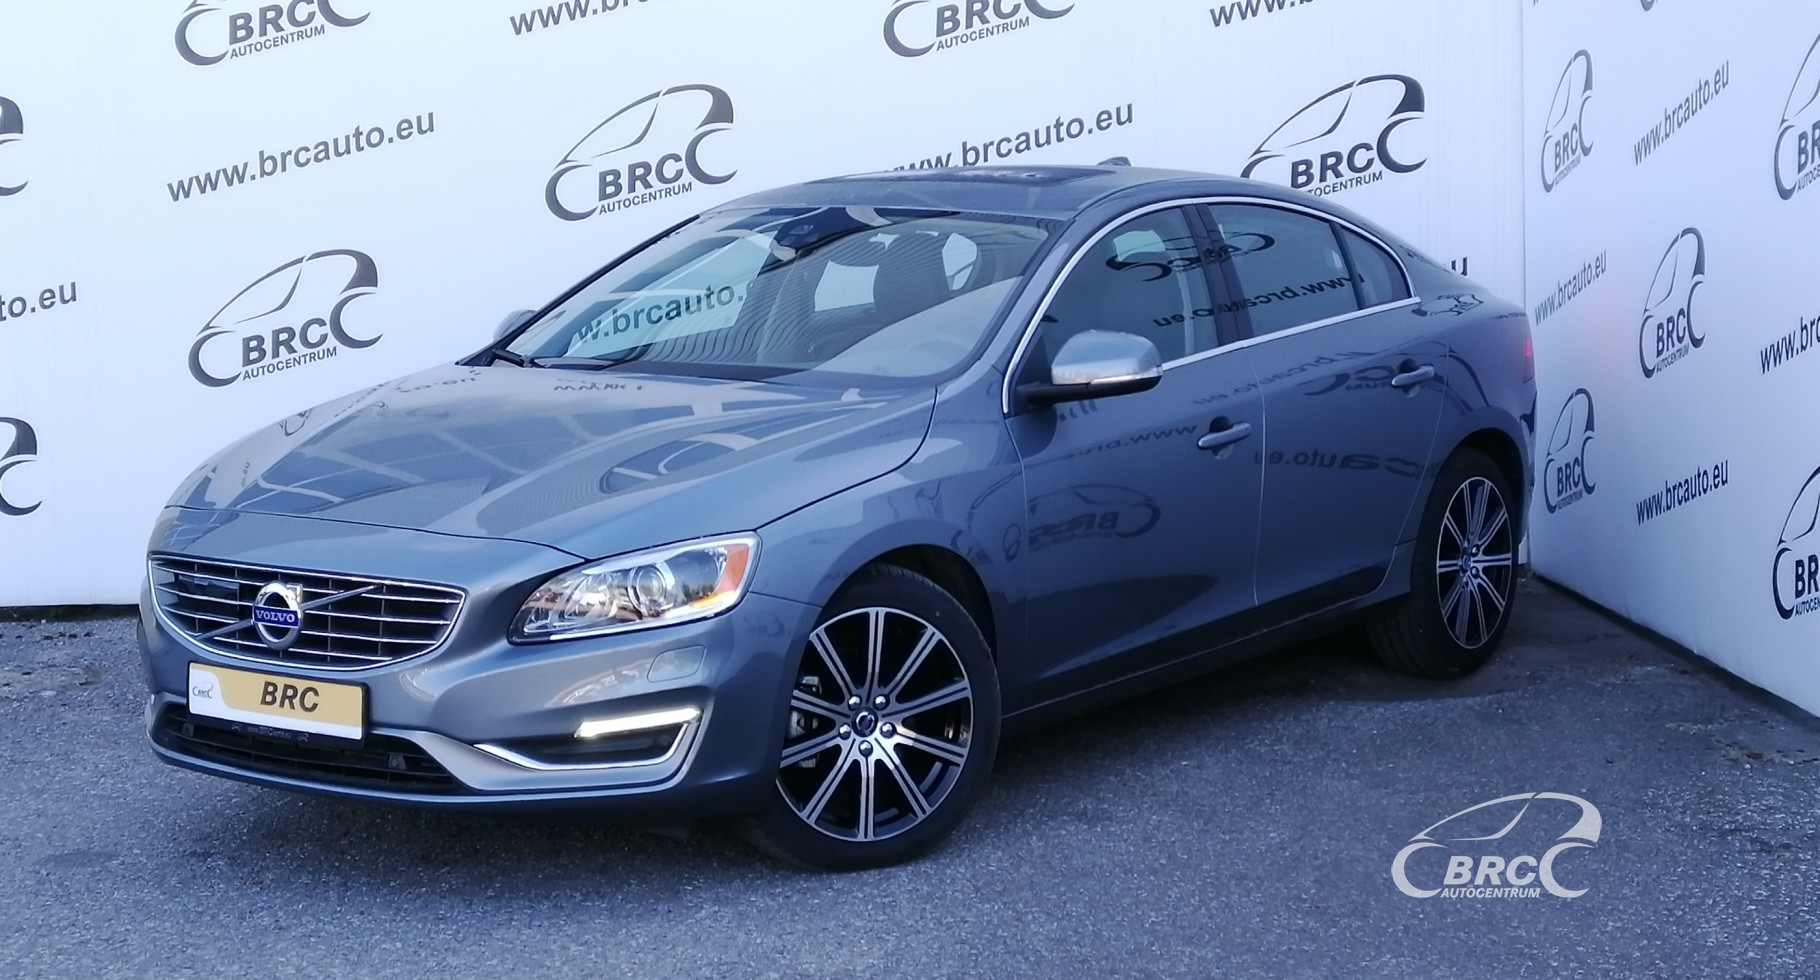 Volvo S60 2.0 T5 Inscription Automatas